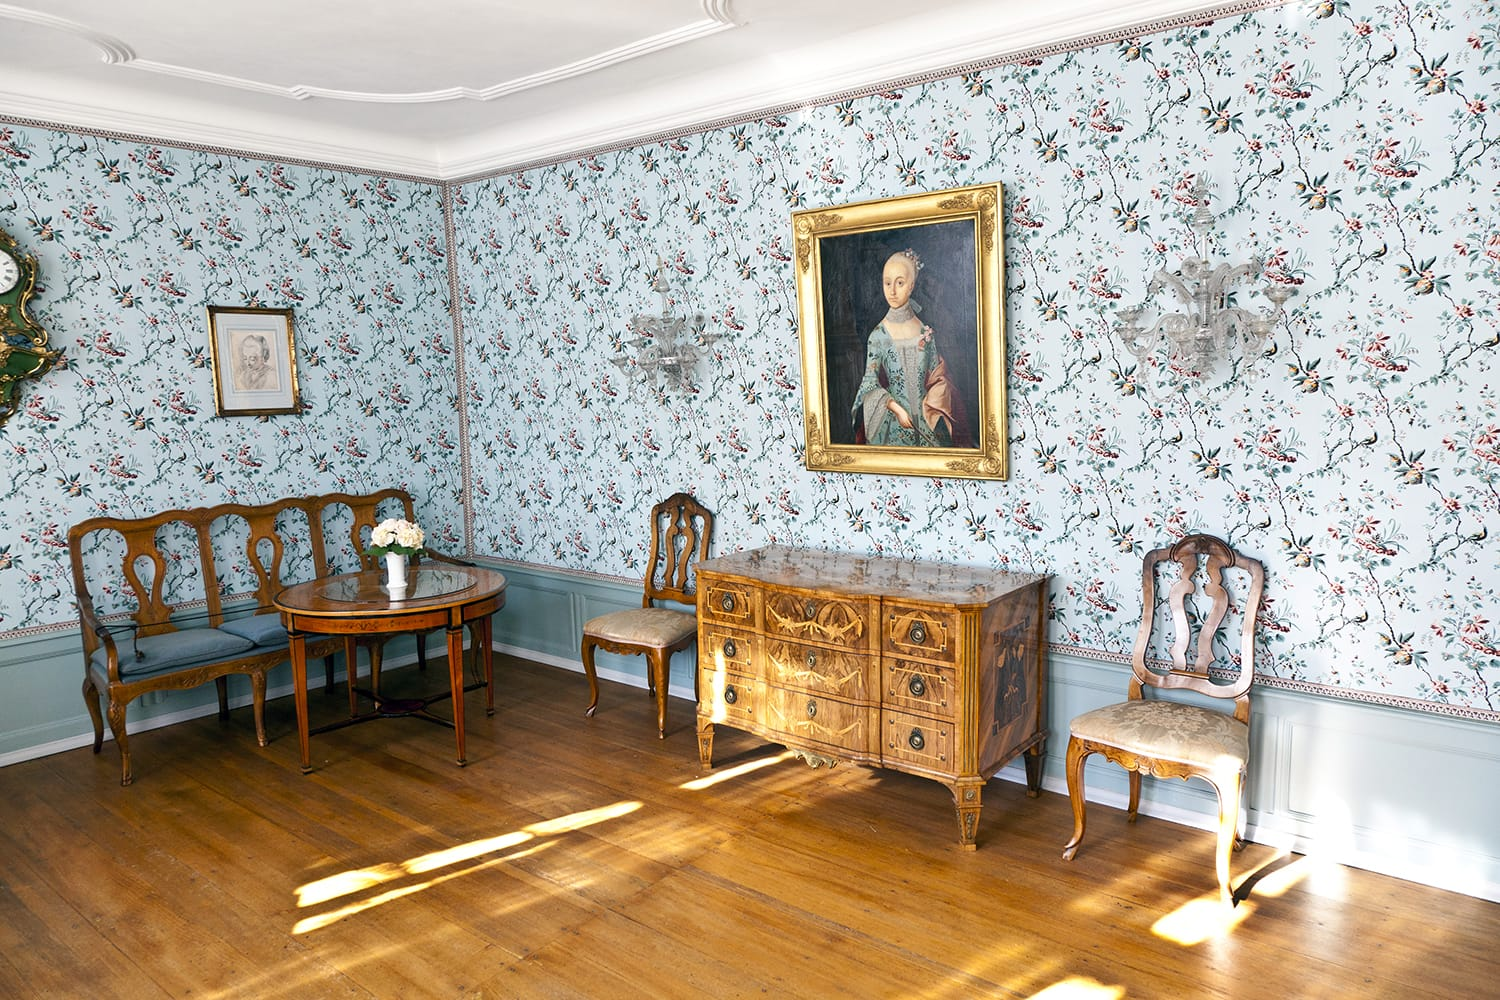 Cornelias Room in the Goethe museum in Frankfurt, Germany